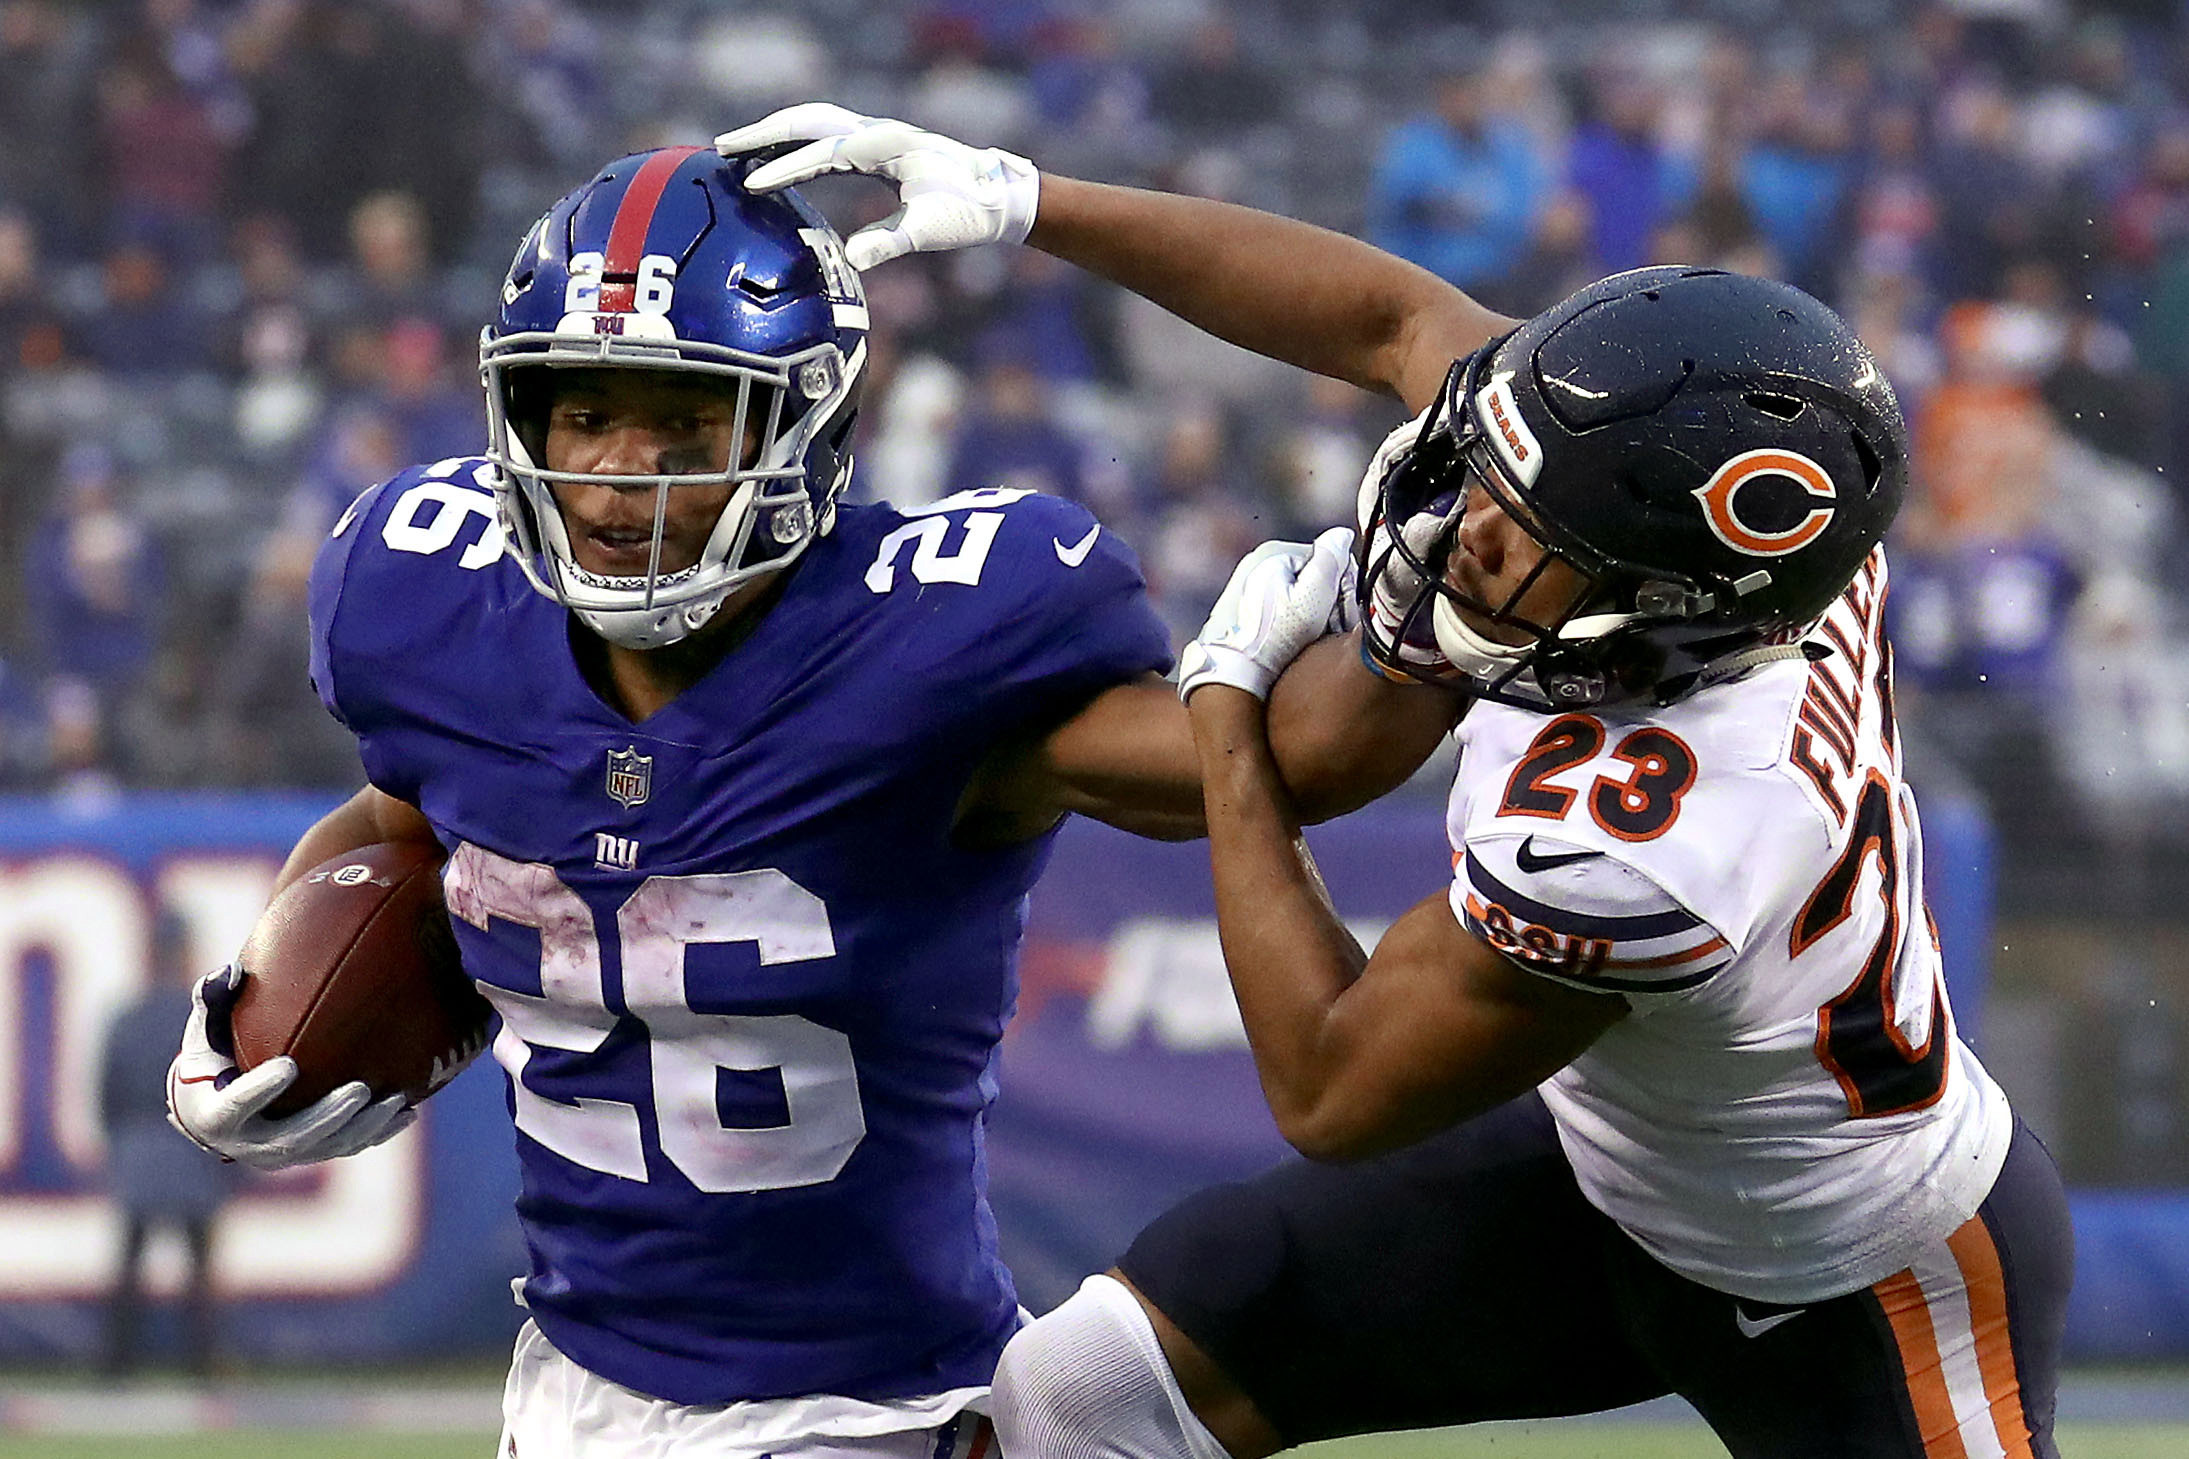 Unleashed Saquon Barkley has a thank you and milestone in mind